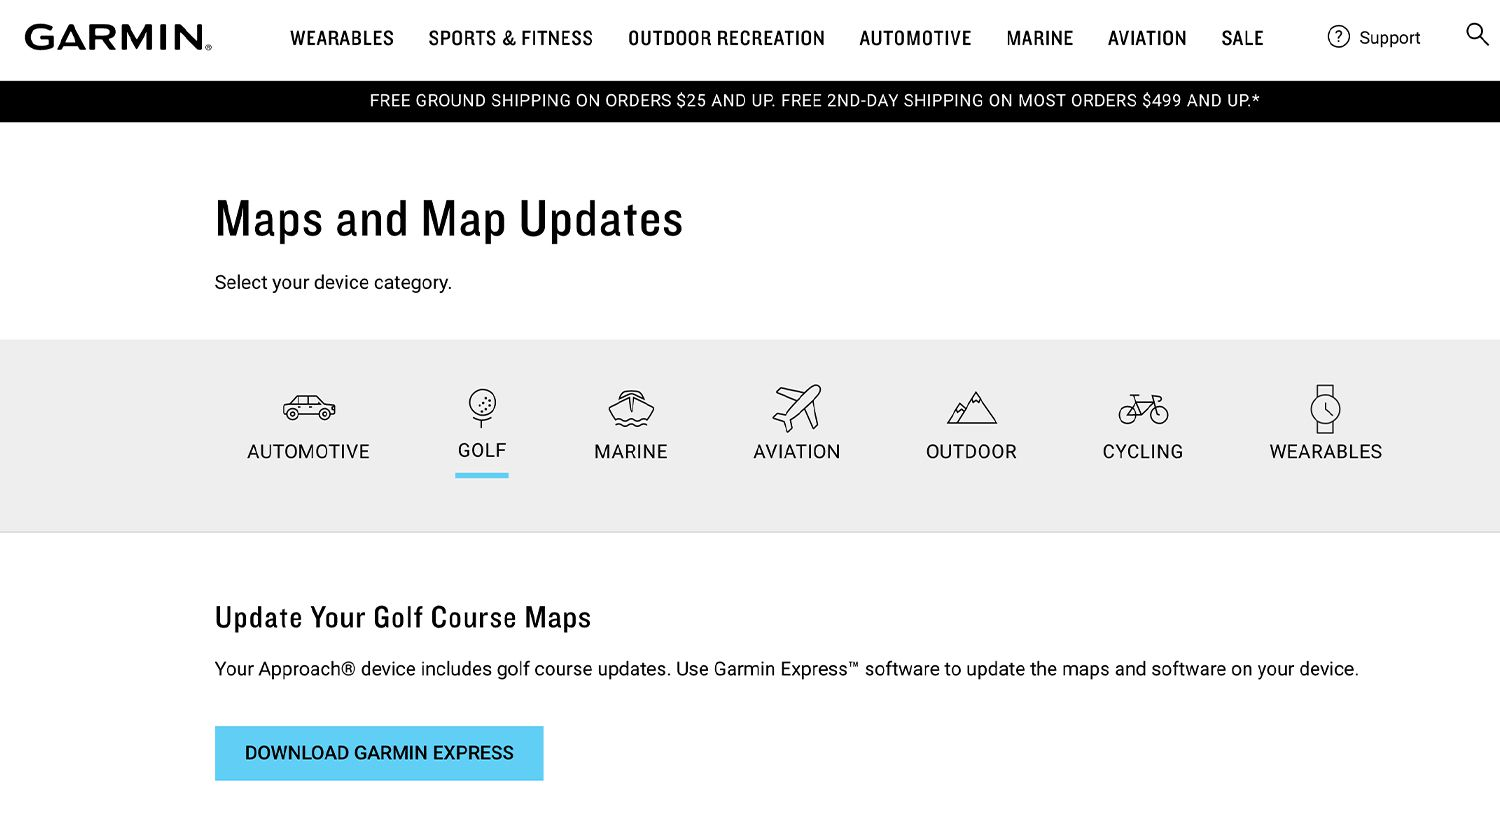 Garmin Maps and Map Updates showing Golf option